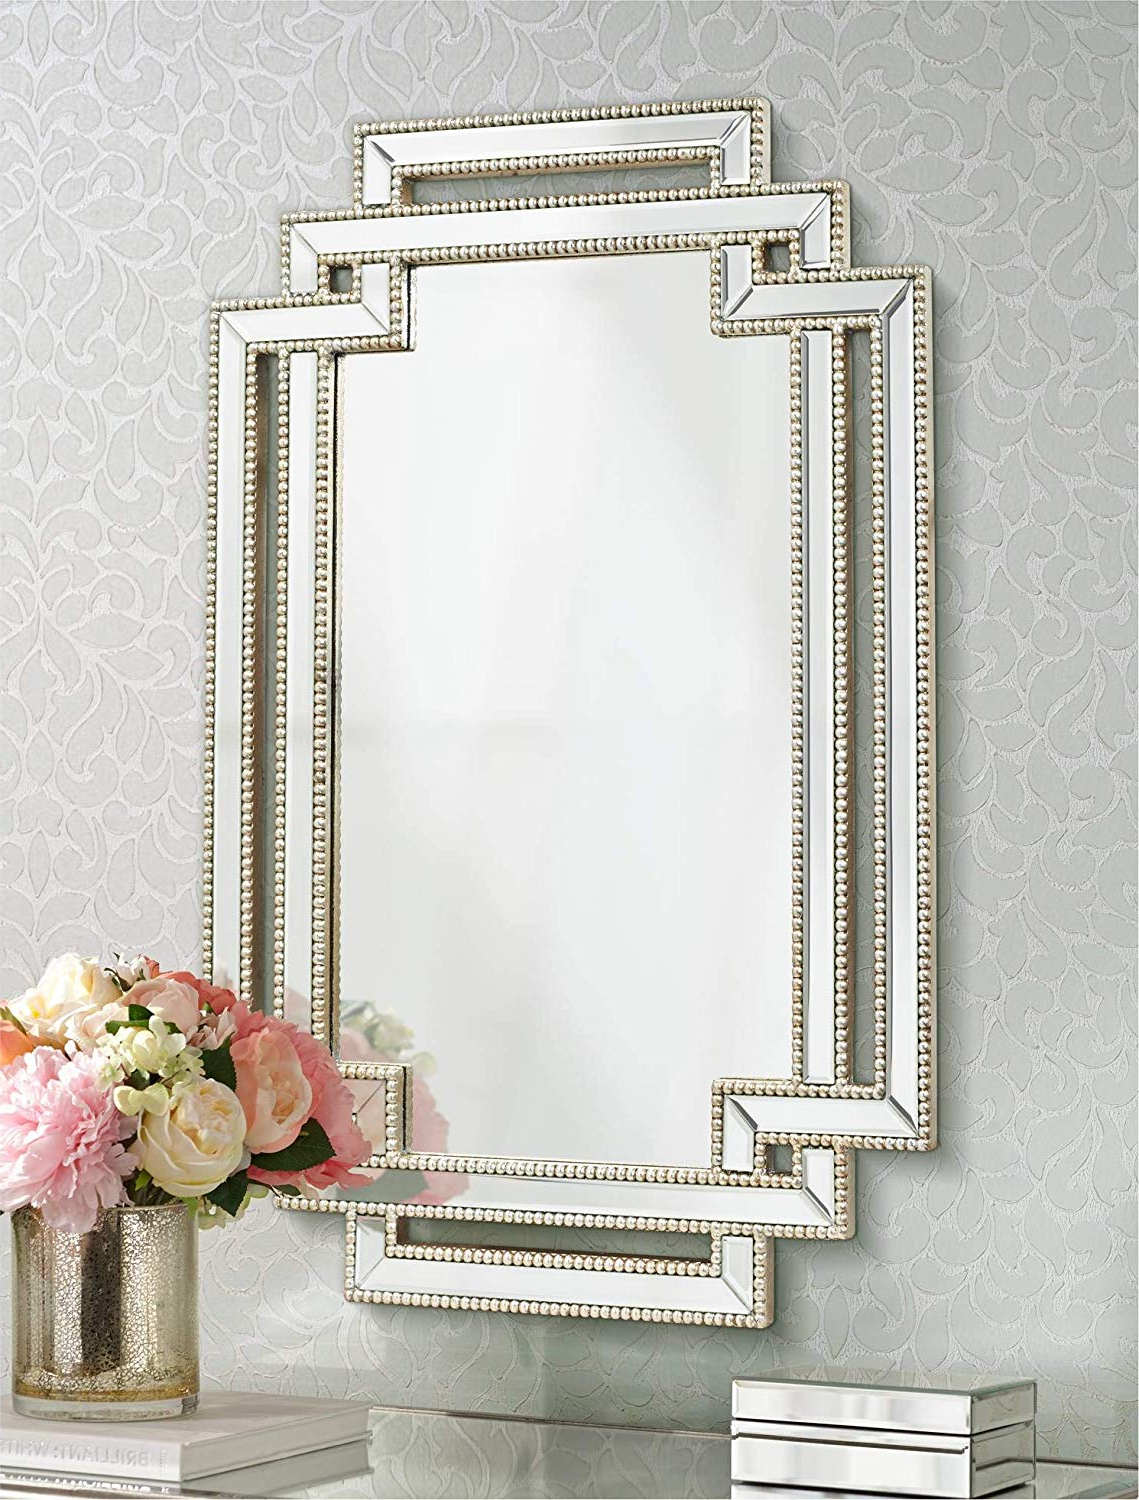 """Silver Beaded Wall Mirrors For Most Popular Possini Euro Design Erte Openwork Silver Beaded 27"""" X 39 1/2"""" Wall Mirror (Gallery 12 of 20)"""